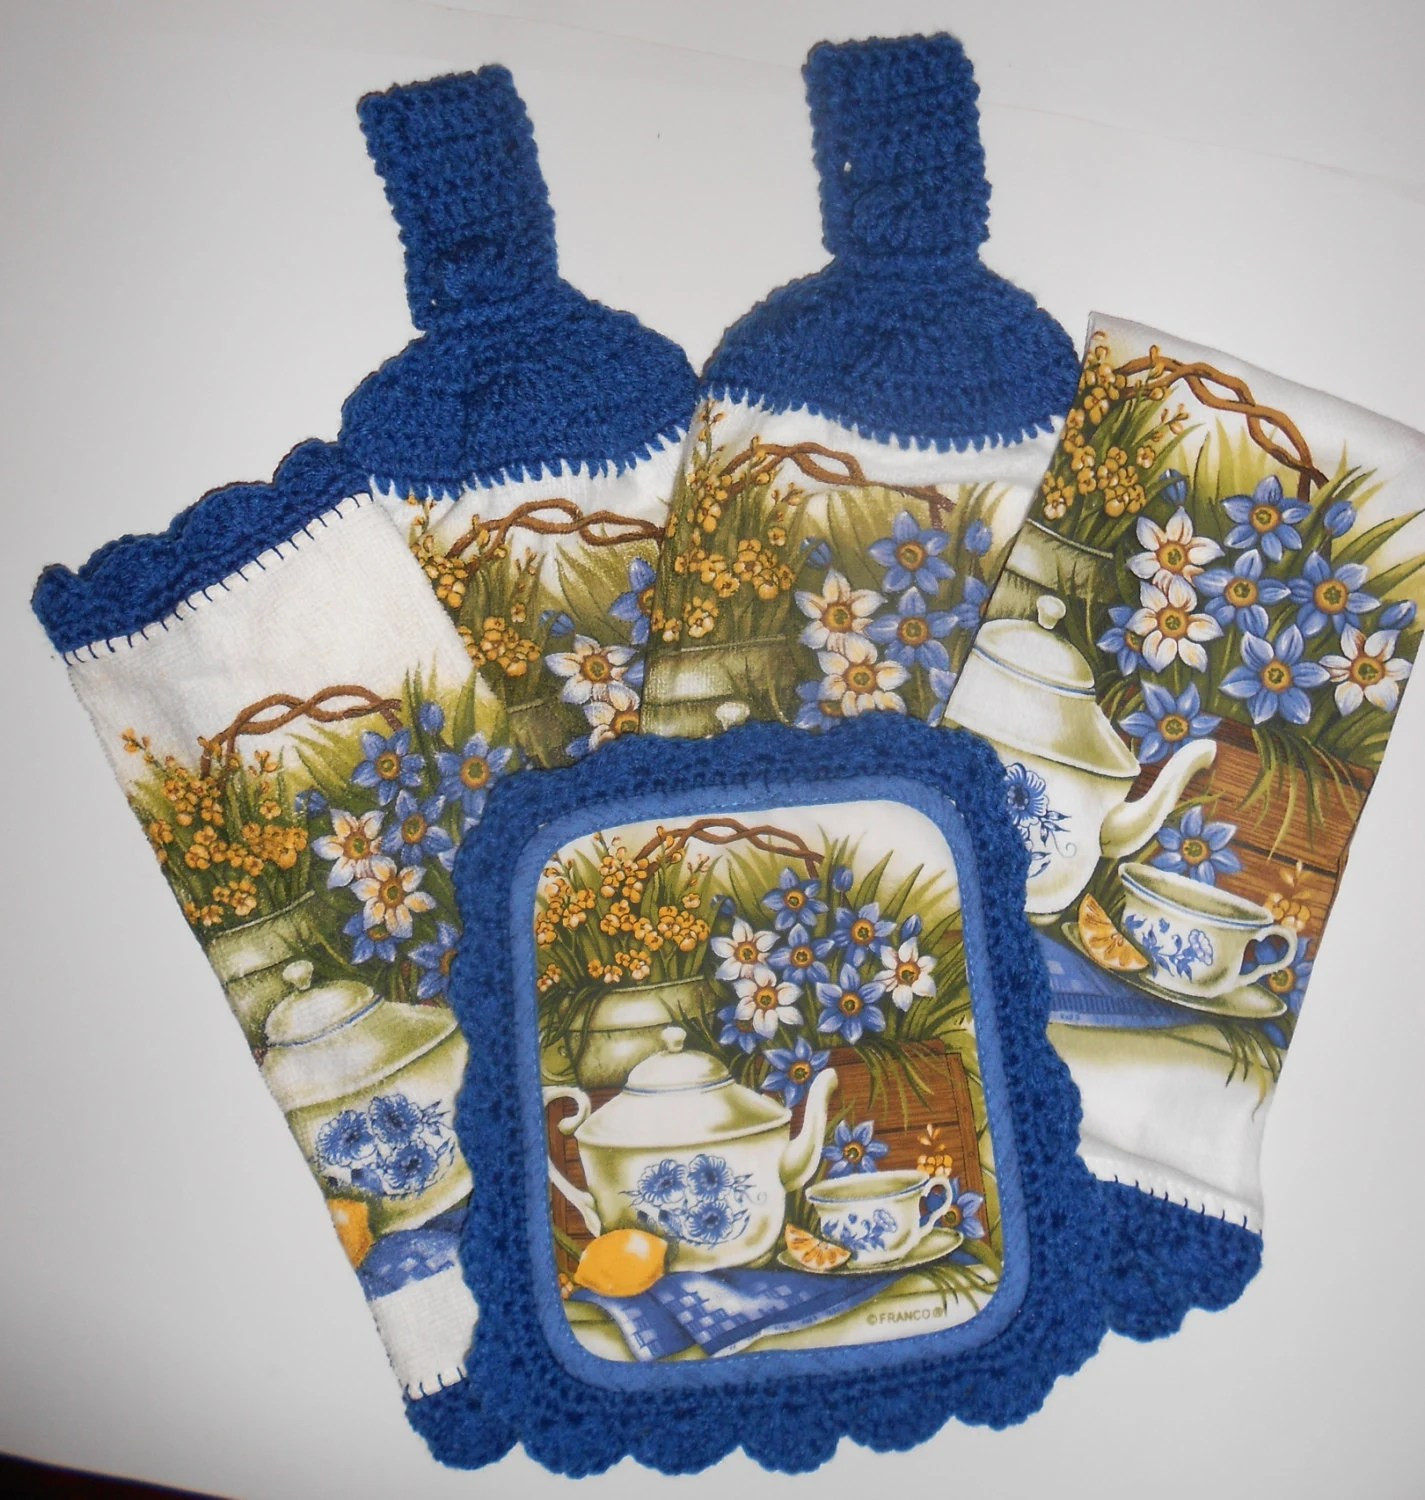 terry kitchen towels knobs for cabinets towel set crochet trim hanging pot holder